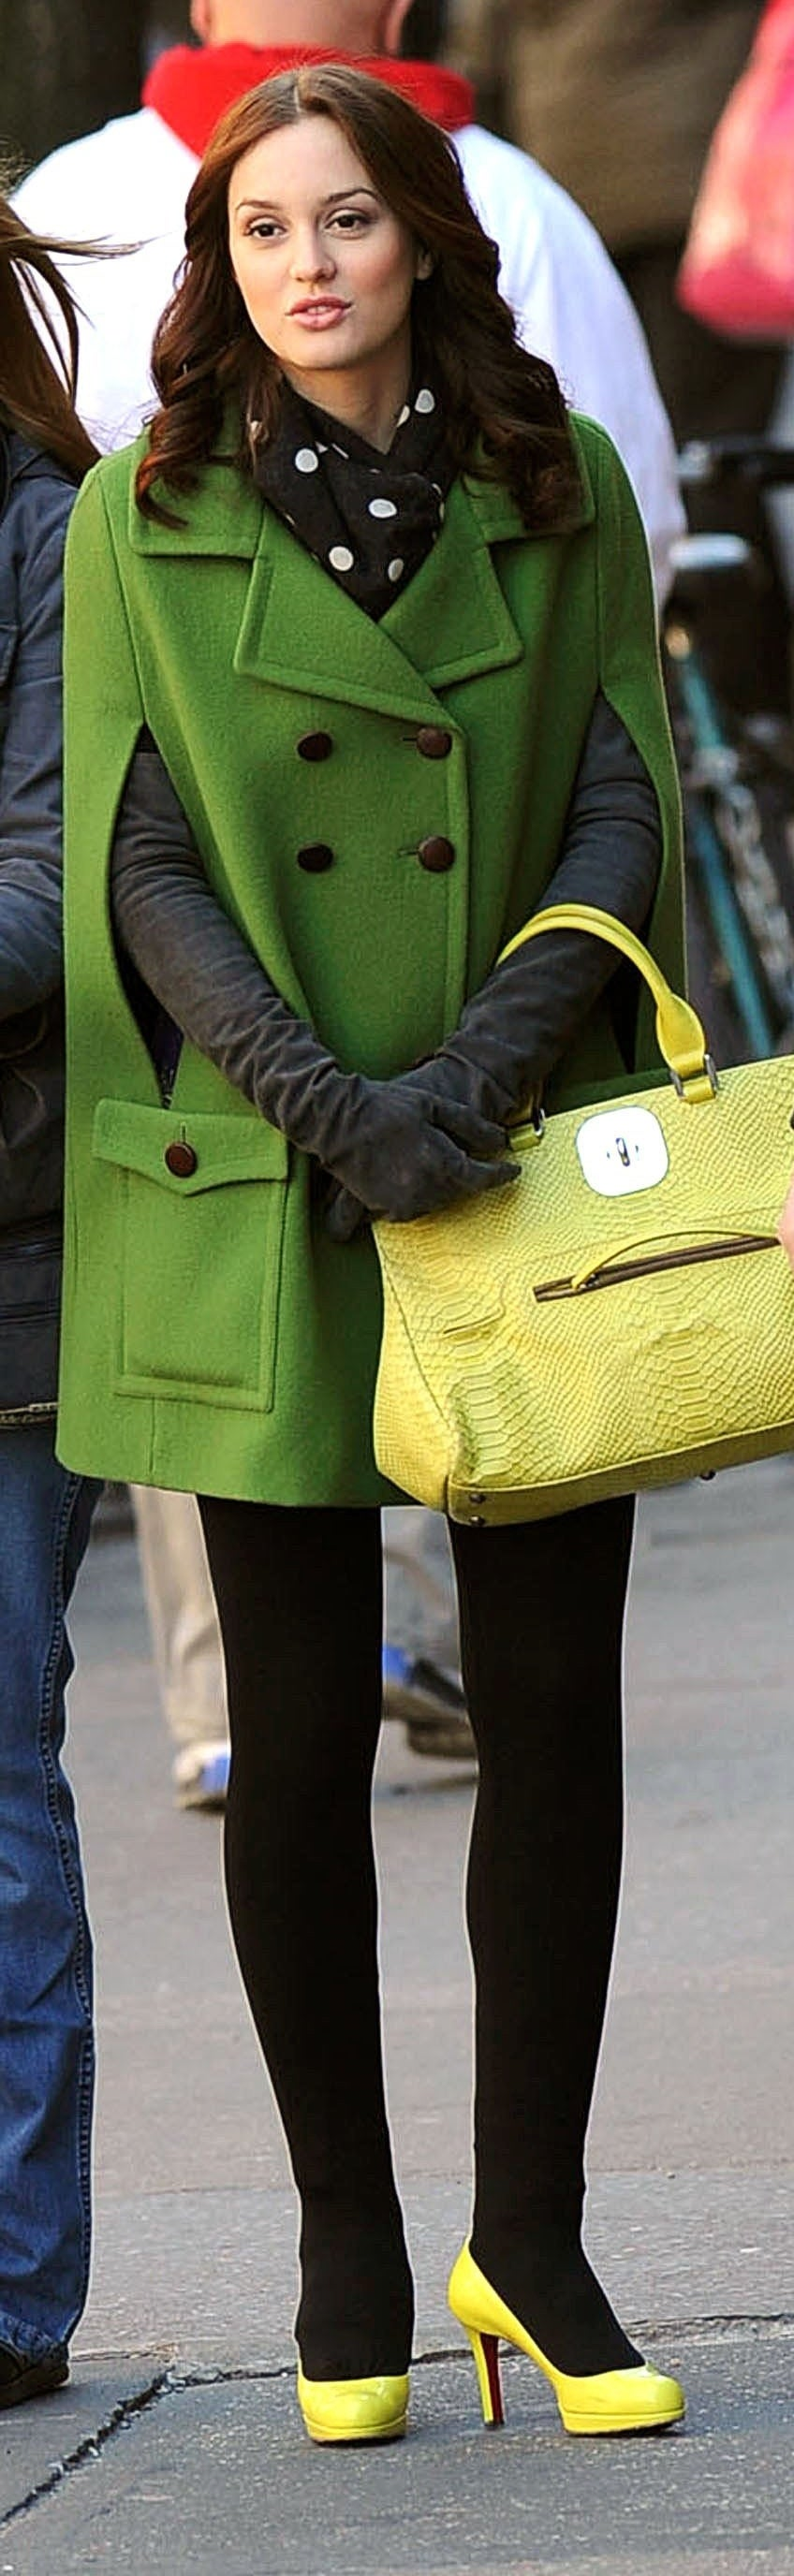 Blair in dark tights, neon shoes, a polka dot scarf, long suede gloves, a neon purse, and a bright cape peacoat